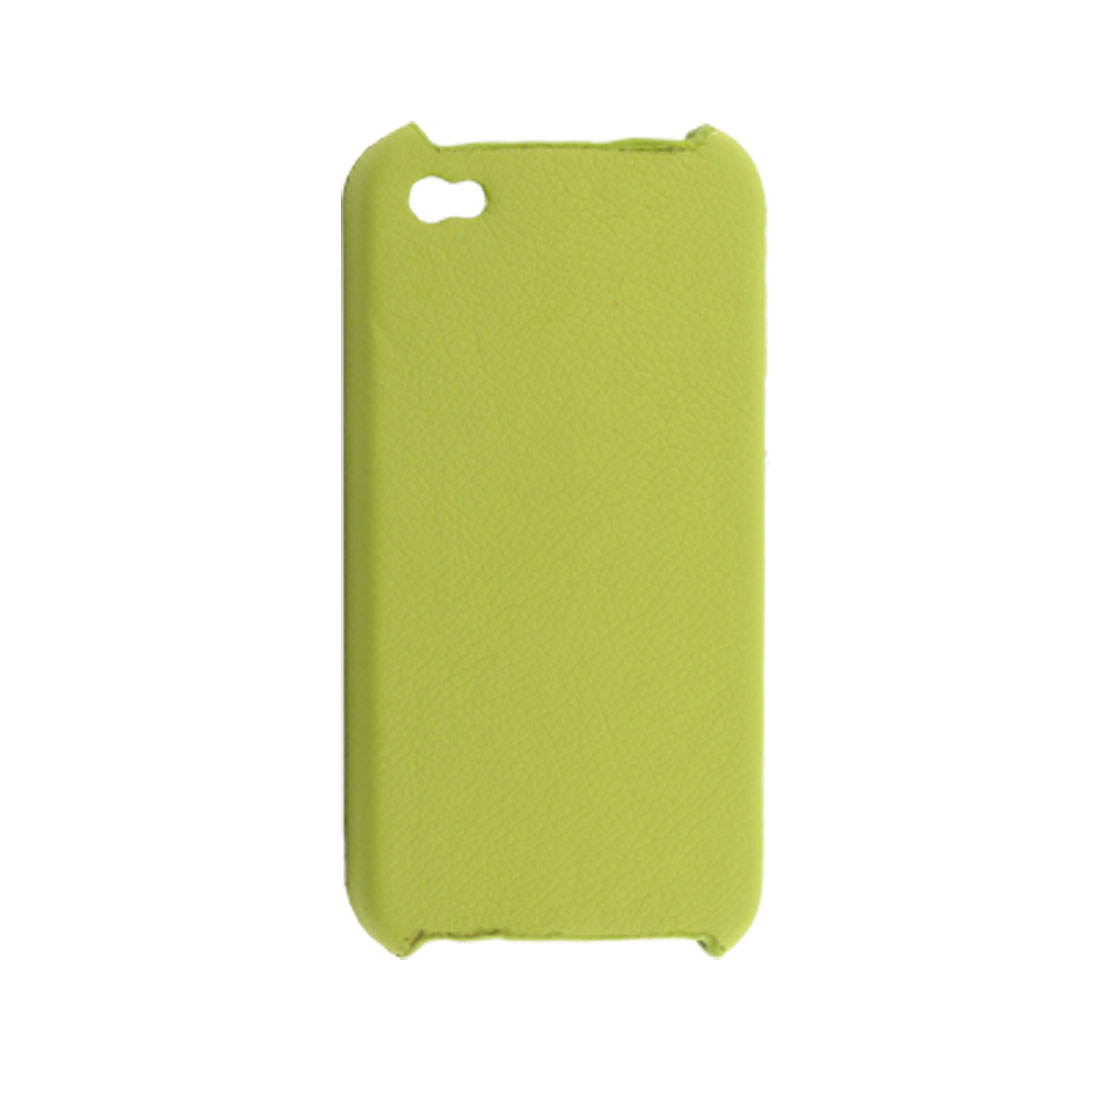 Protective Faux Leather Coated Plastic Back Case Green for iPhone 4 4G